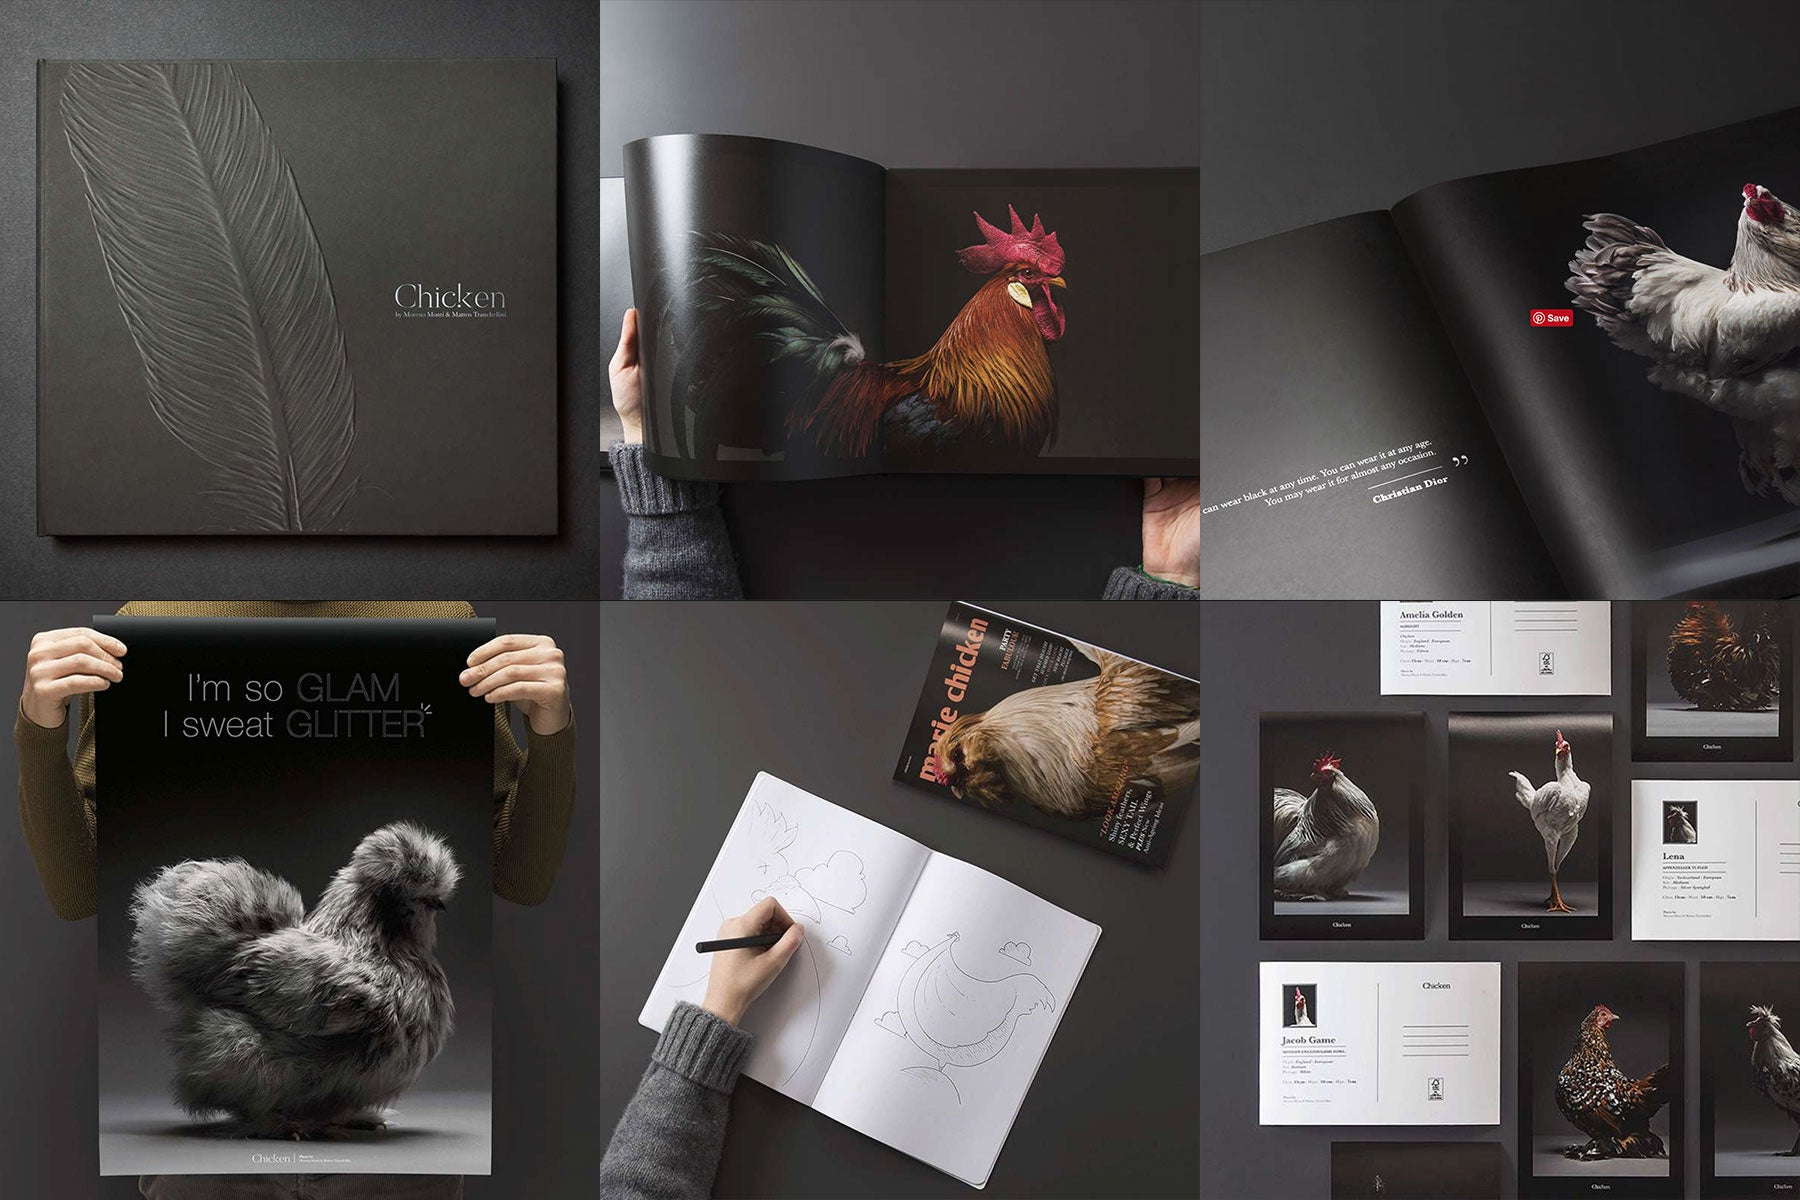 The Chicken Project by Atellani, Matteo Tranchellini and Moreno Monti